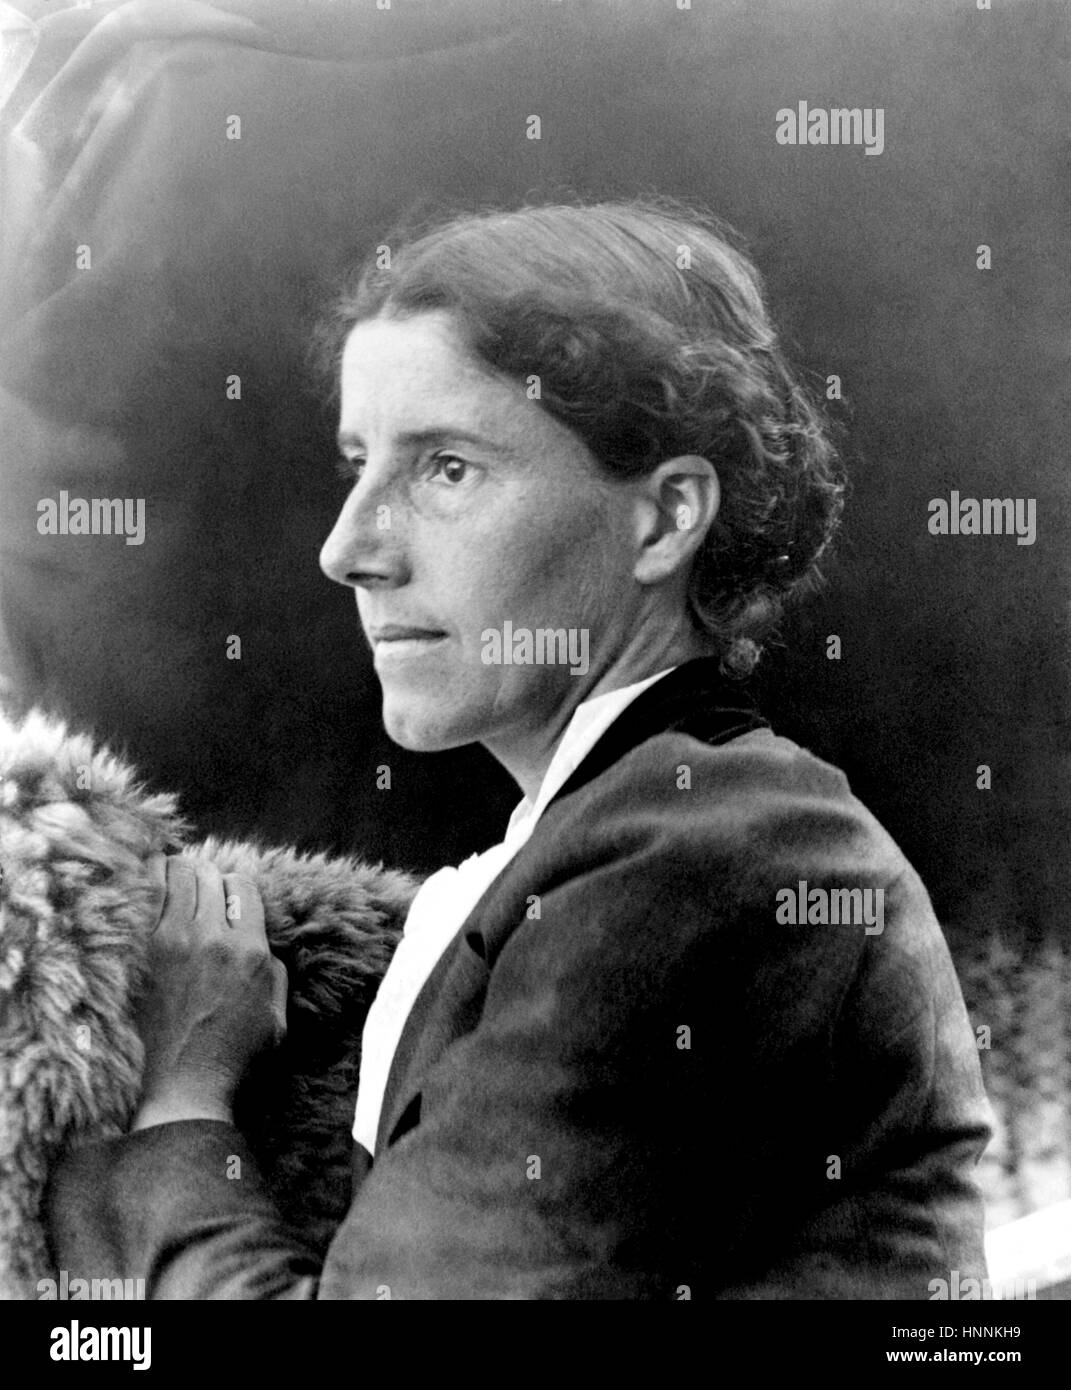 CHARLOTTE PERKINS GILMAN (1860-1935) American social reformer and novelist about 1900 - Stock Image